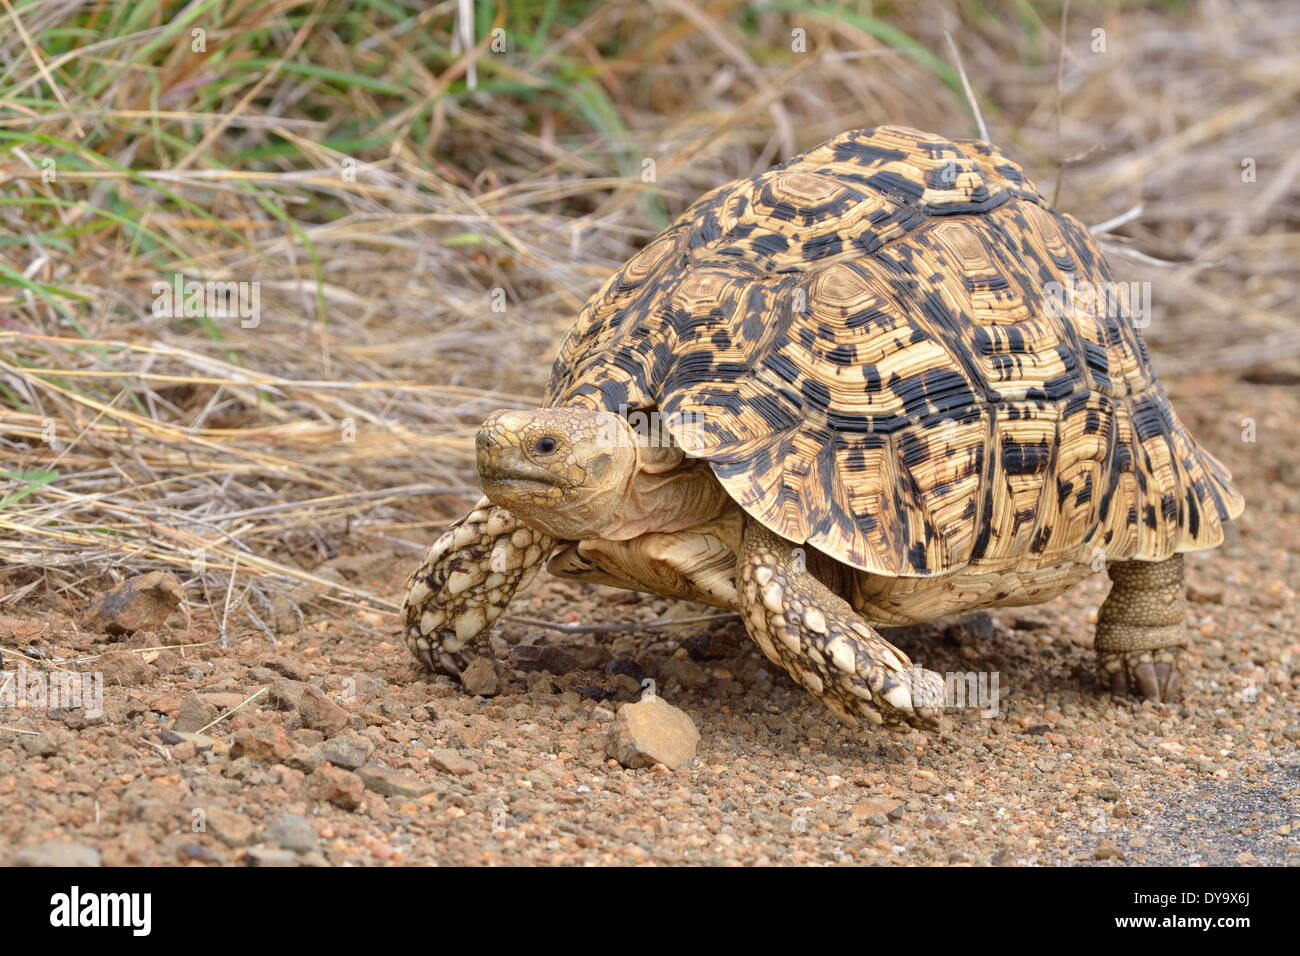 Leopard tortoise (Stigmochelys pardalis), crossing the tarred road, Kruger National Park, South Africa, Africa - Stock Image